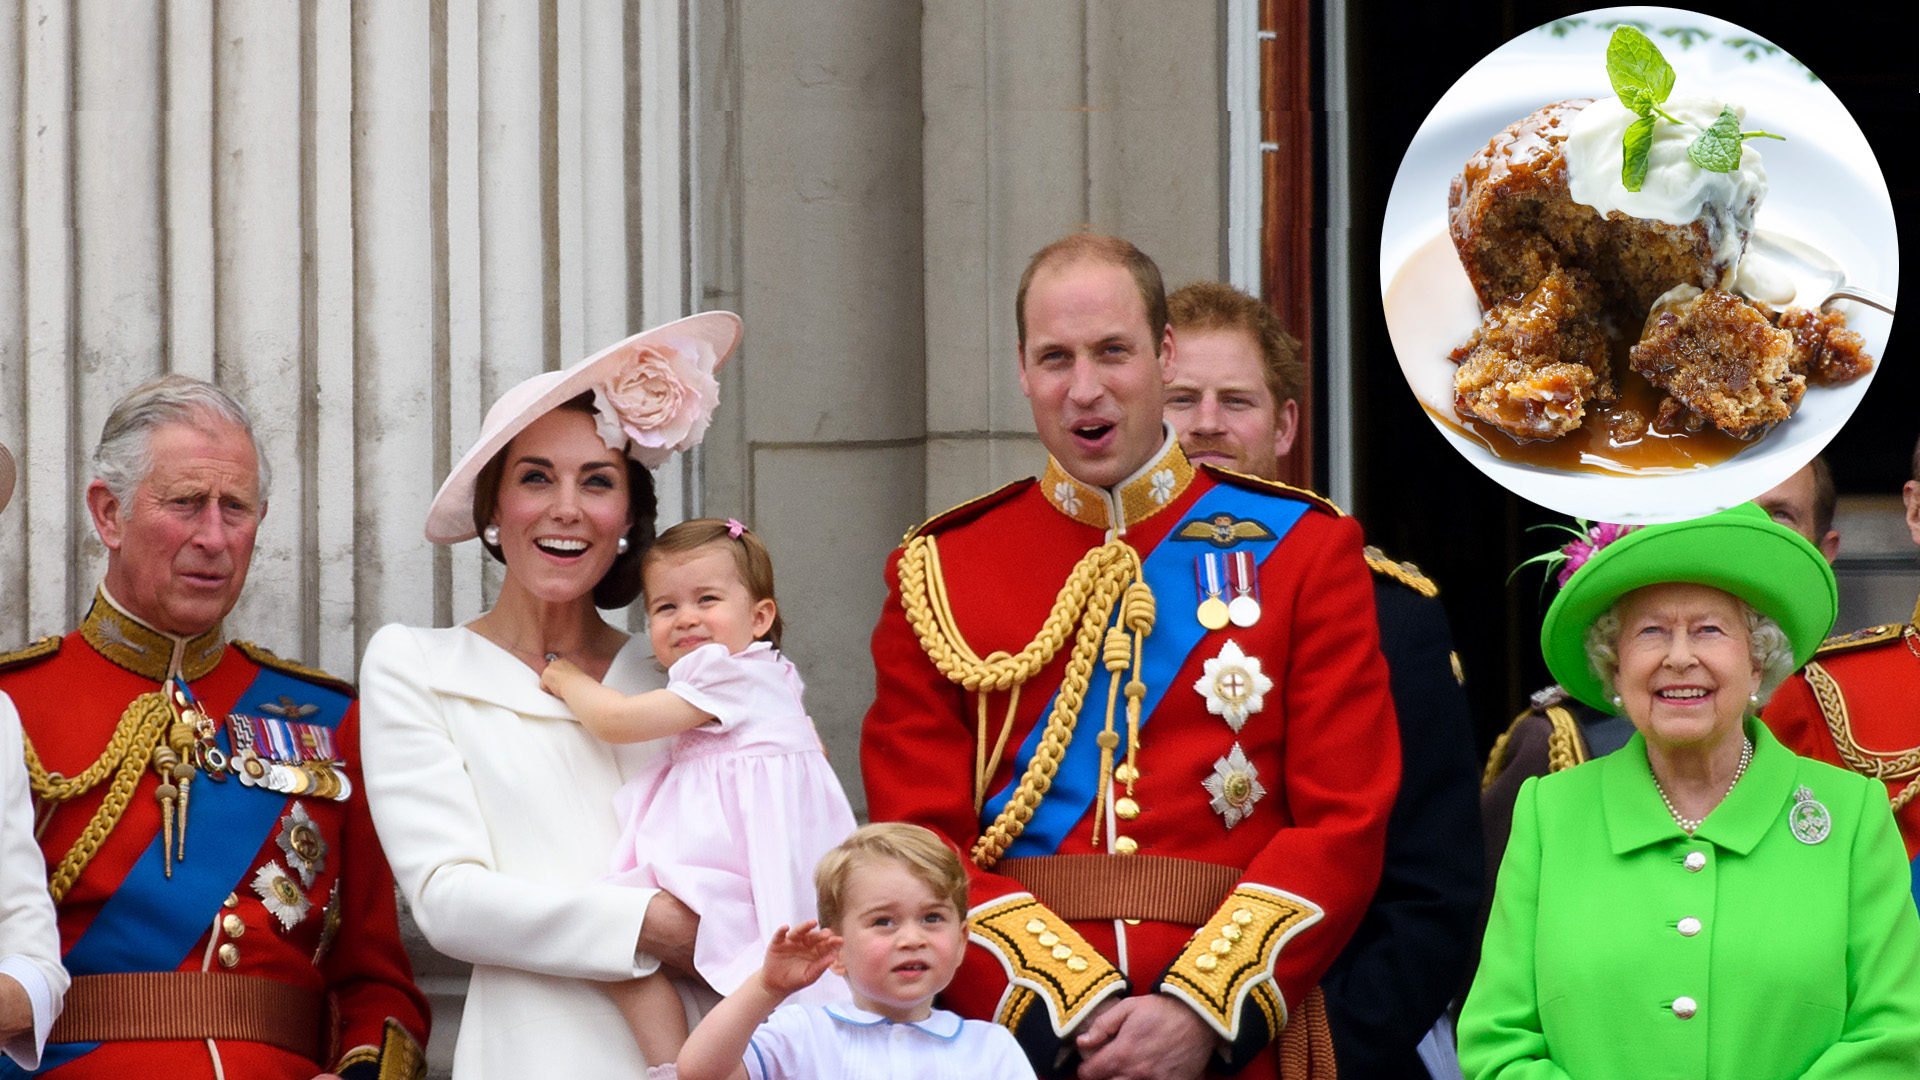 What the royals eat at home